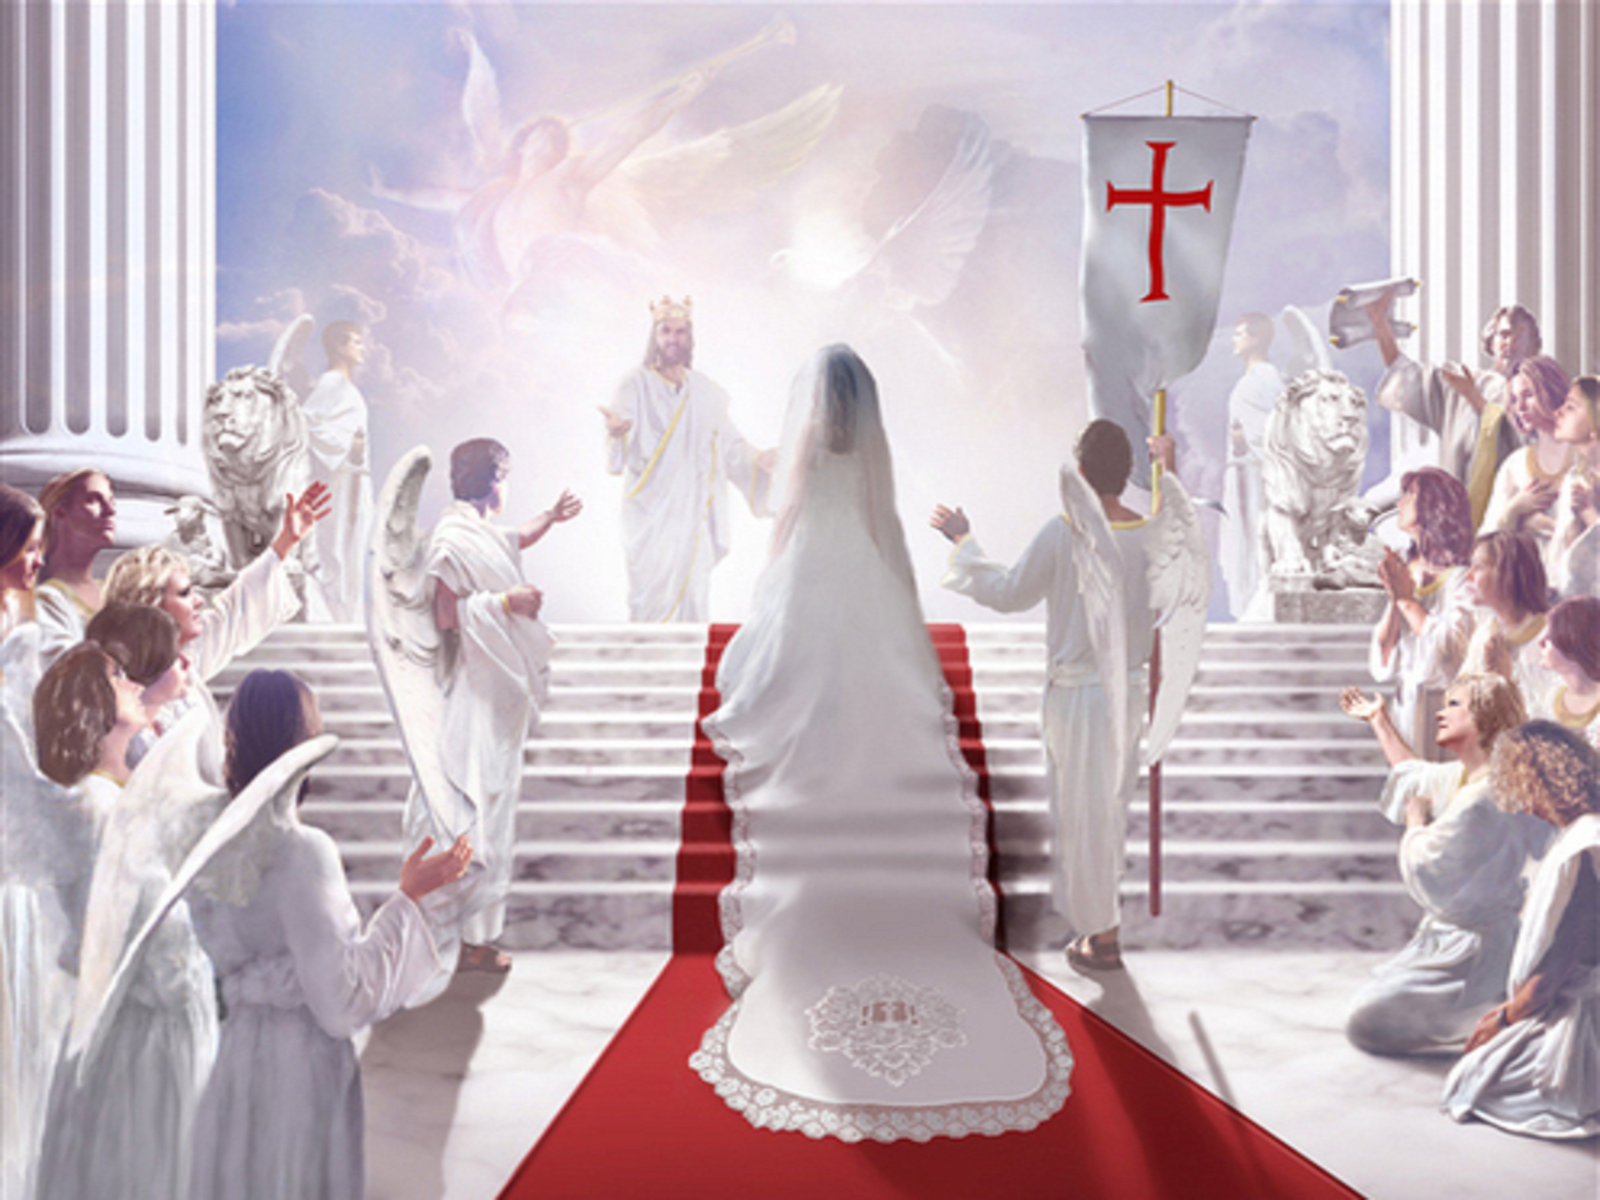 THE WEDDING FEAST – Malaysia\'s most comprehensive Christian news ...